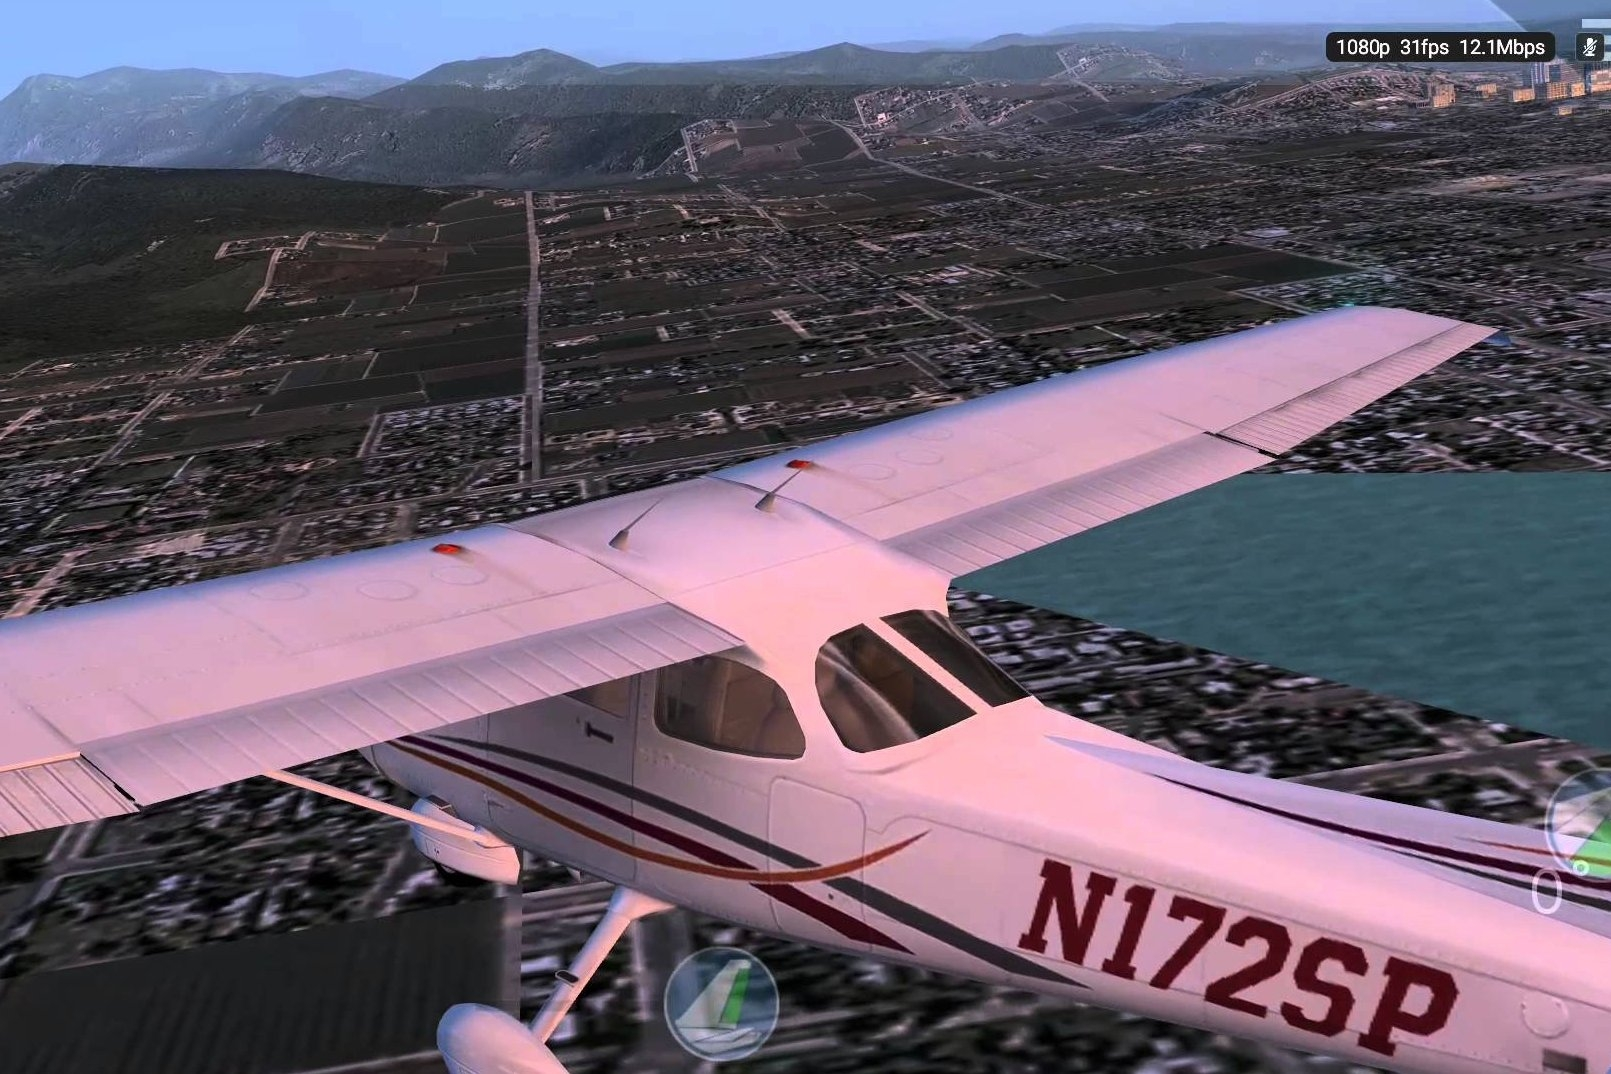 Modojo | X-Plane Developer Brings Flight Sims Mobile